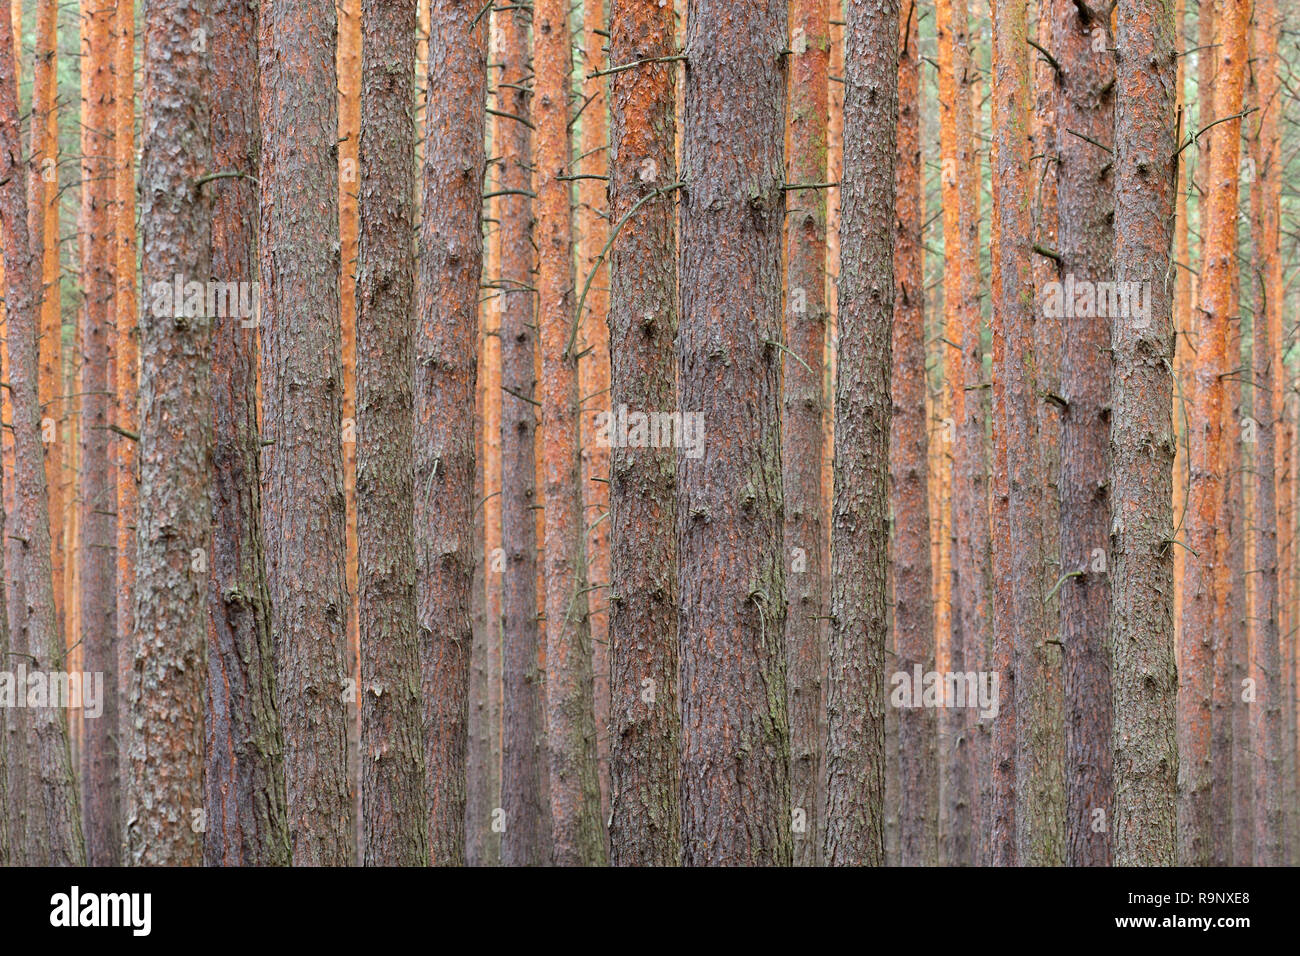 Scots Pine (Pinus sylvestris) tree trunks in coniferous forest - Stock Image